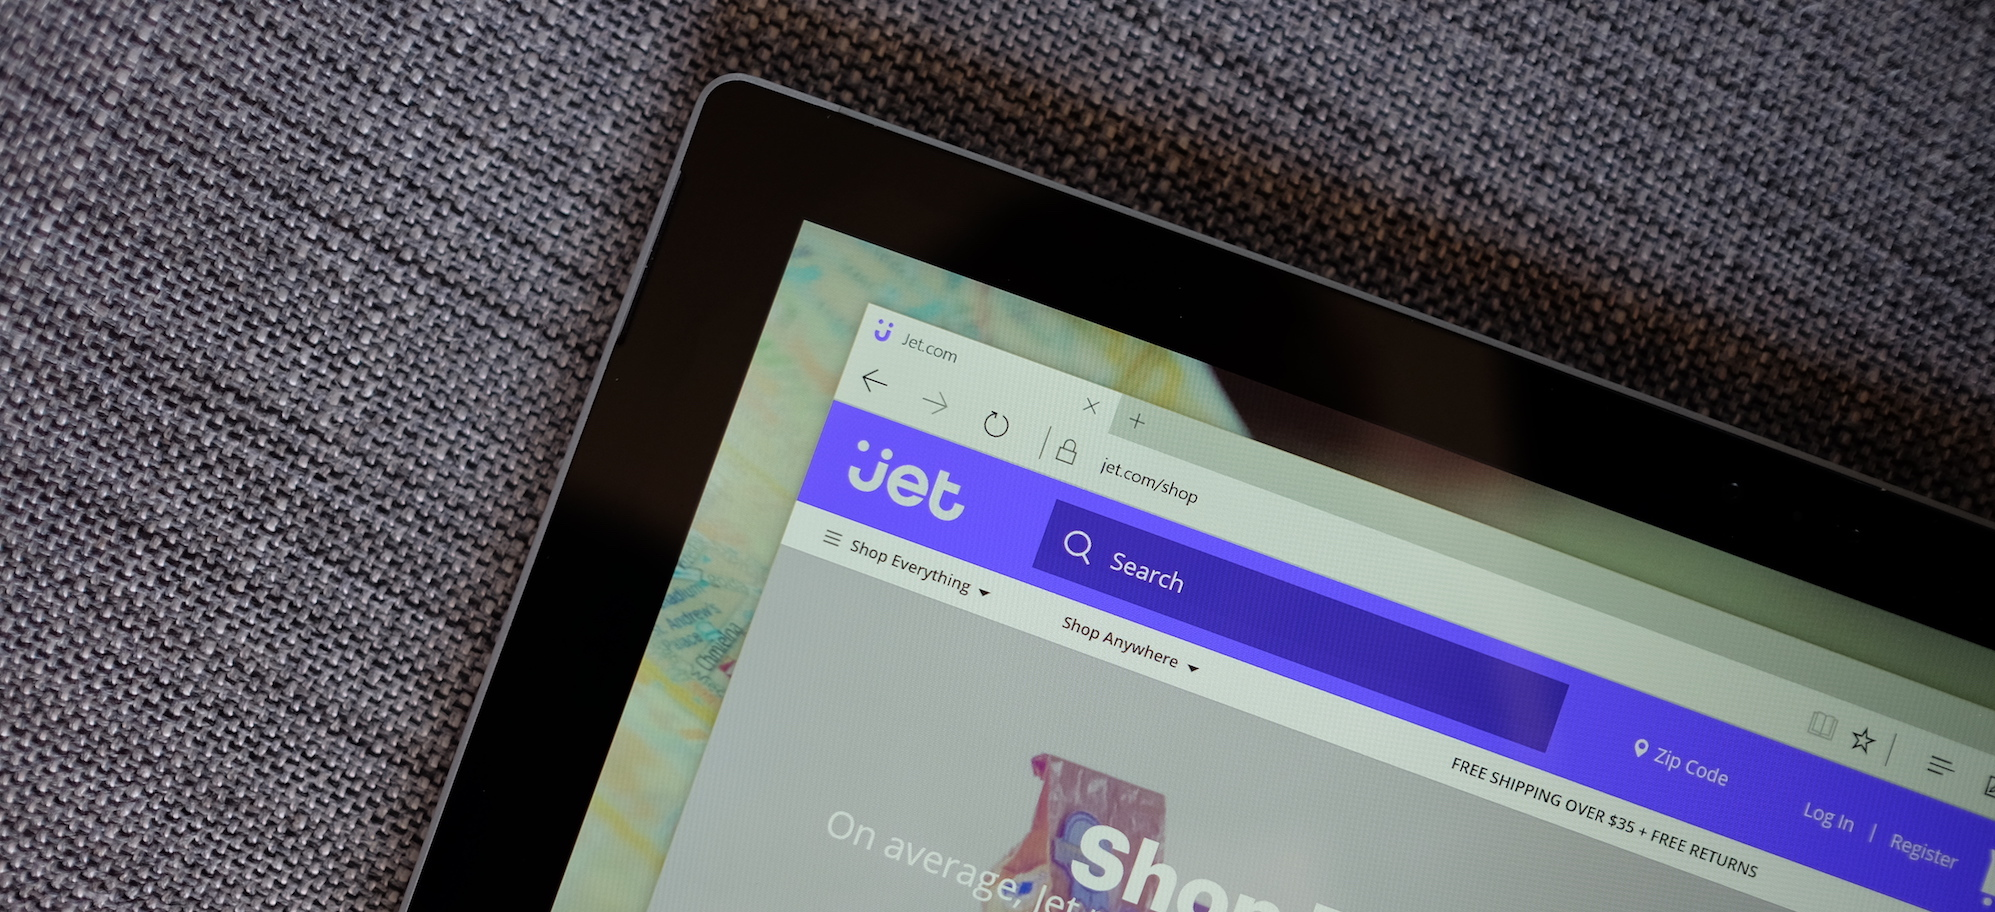 $49 Amazon Prime rival Jet.com is now open to all in the US